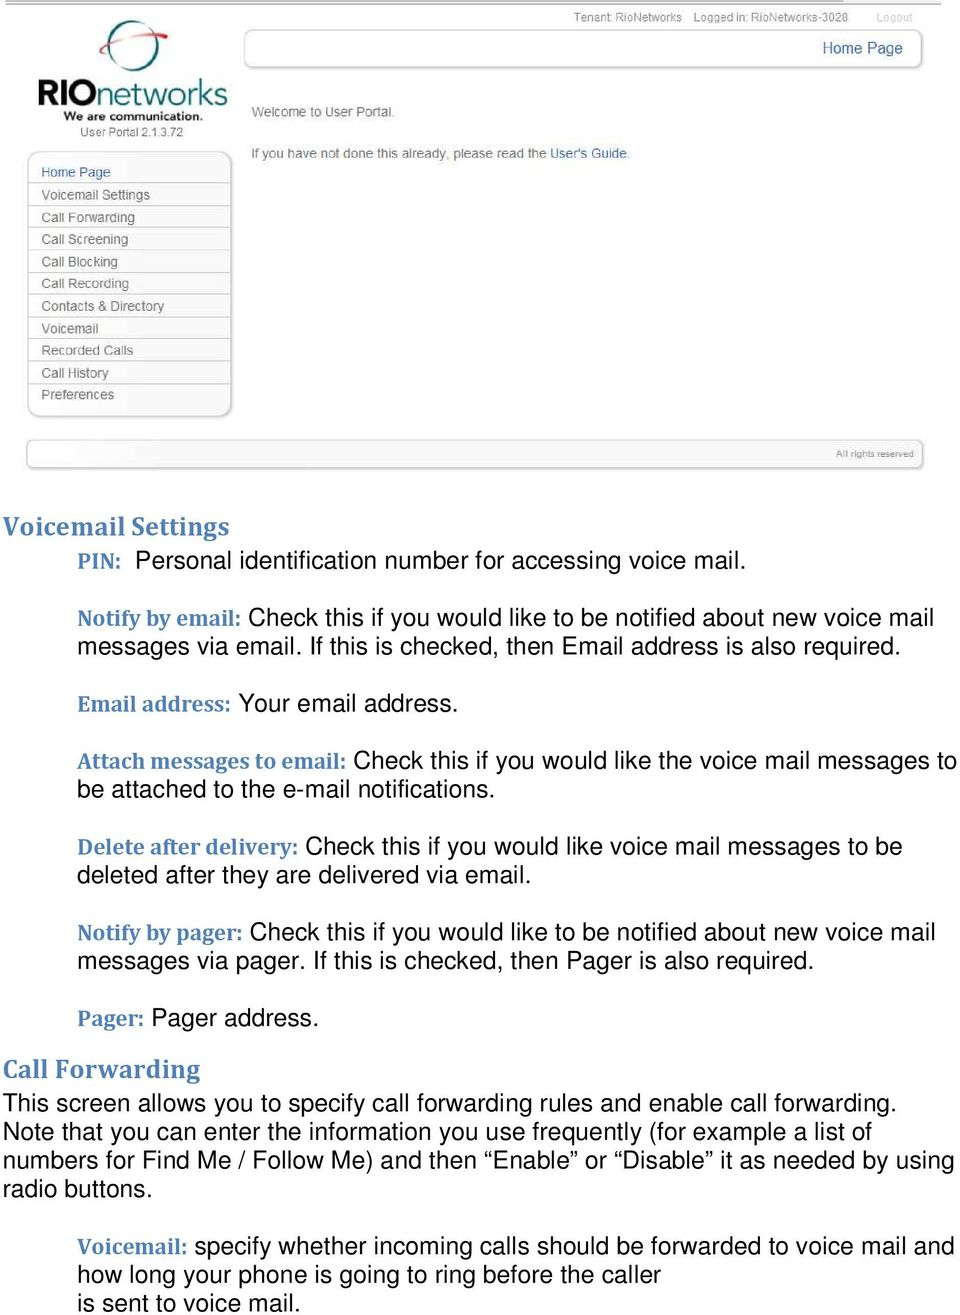 Attach messages to email: Check this if you would like the voice mail messages to be attached to the e-mail notifications.